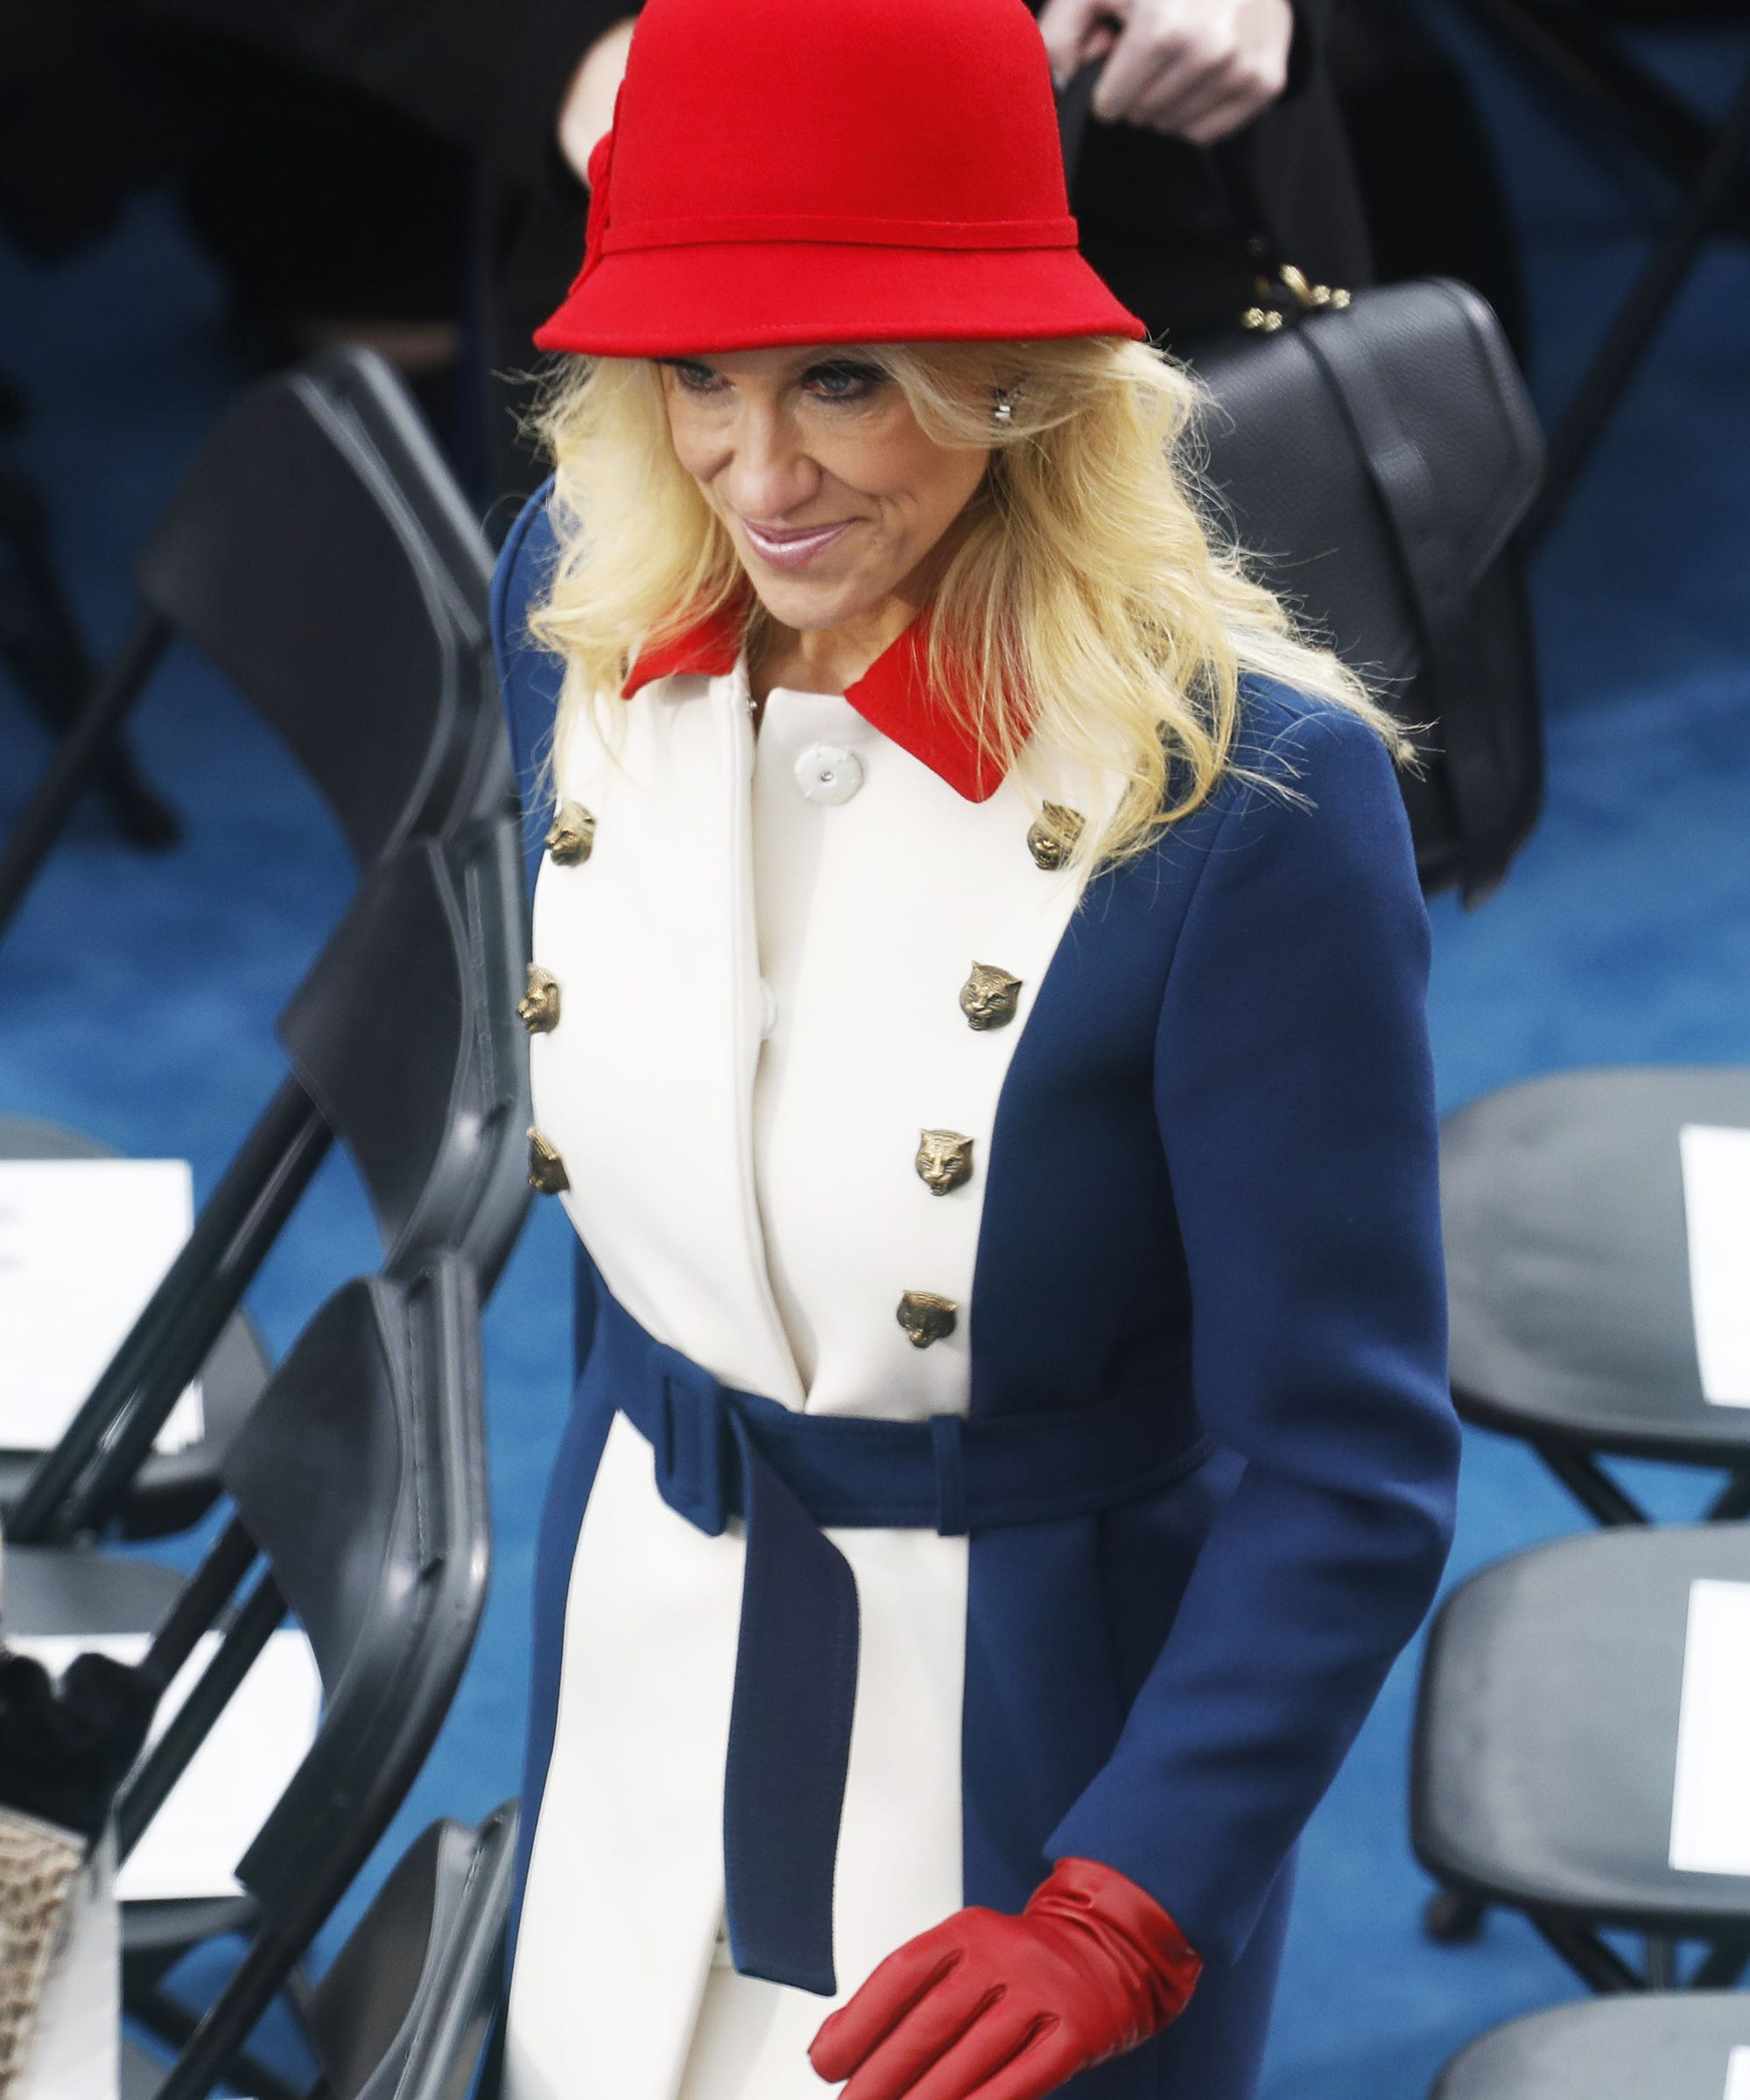 Kellyanne Conway Revolutionary Inauguration Outfit Meme